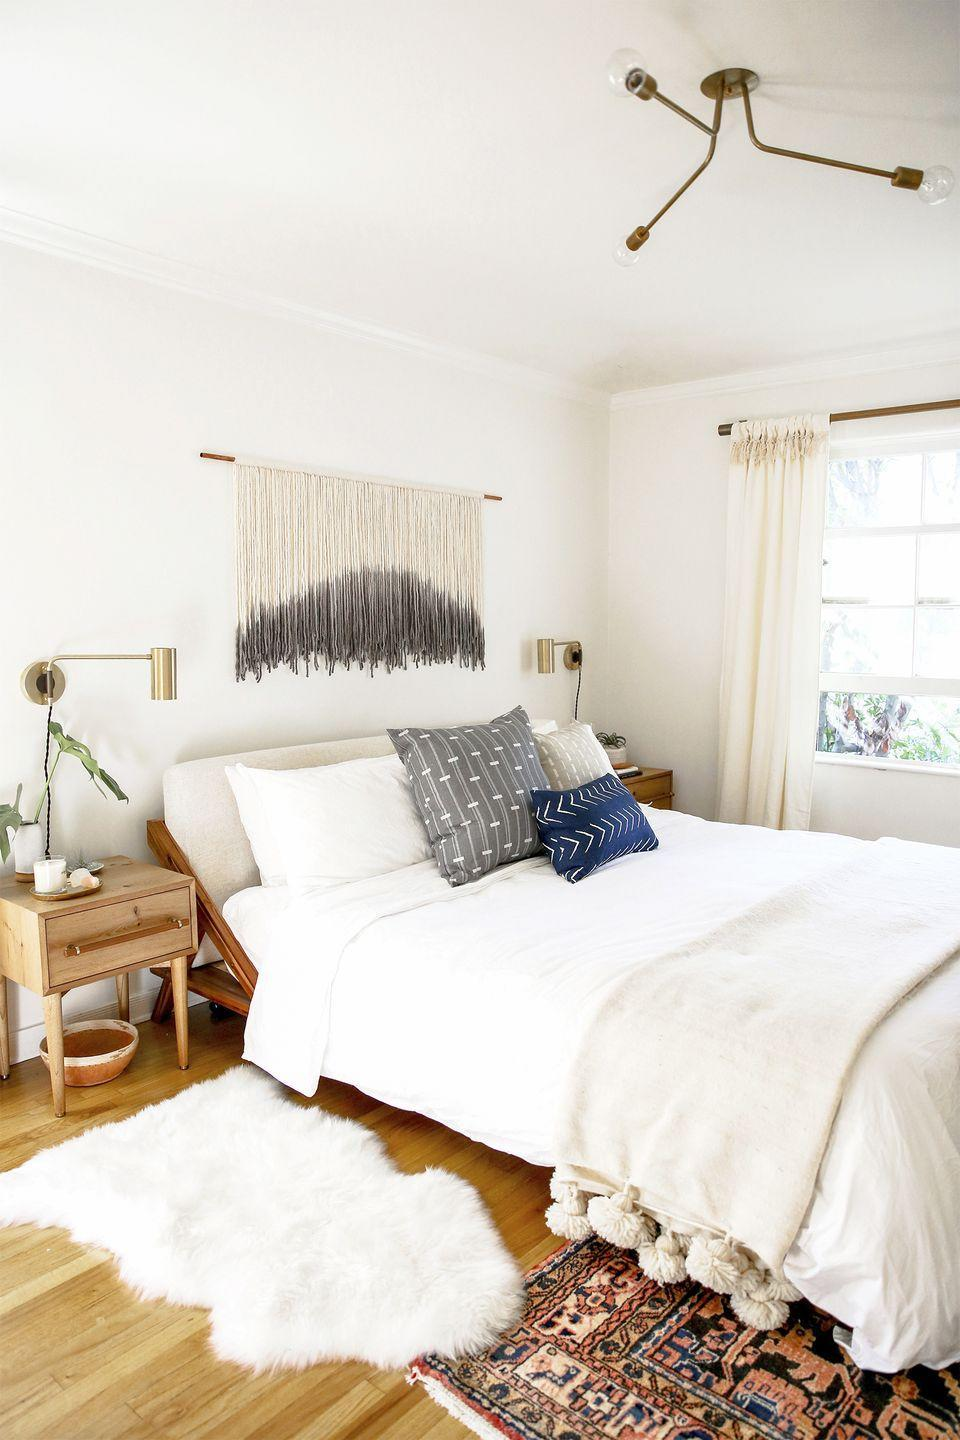 <p>To add dimension to an all-white bedroom, bring in different textures with a faux fur rug and macrame wall hanging.</p>